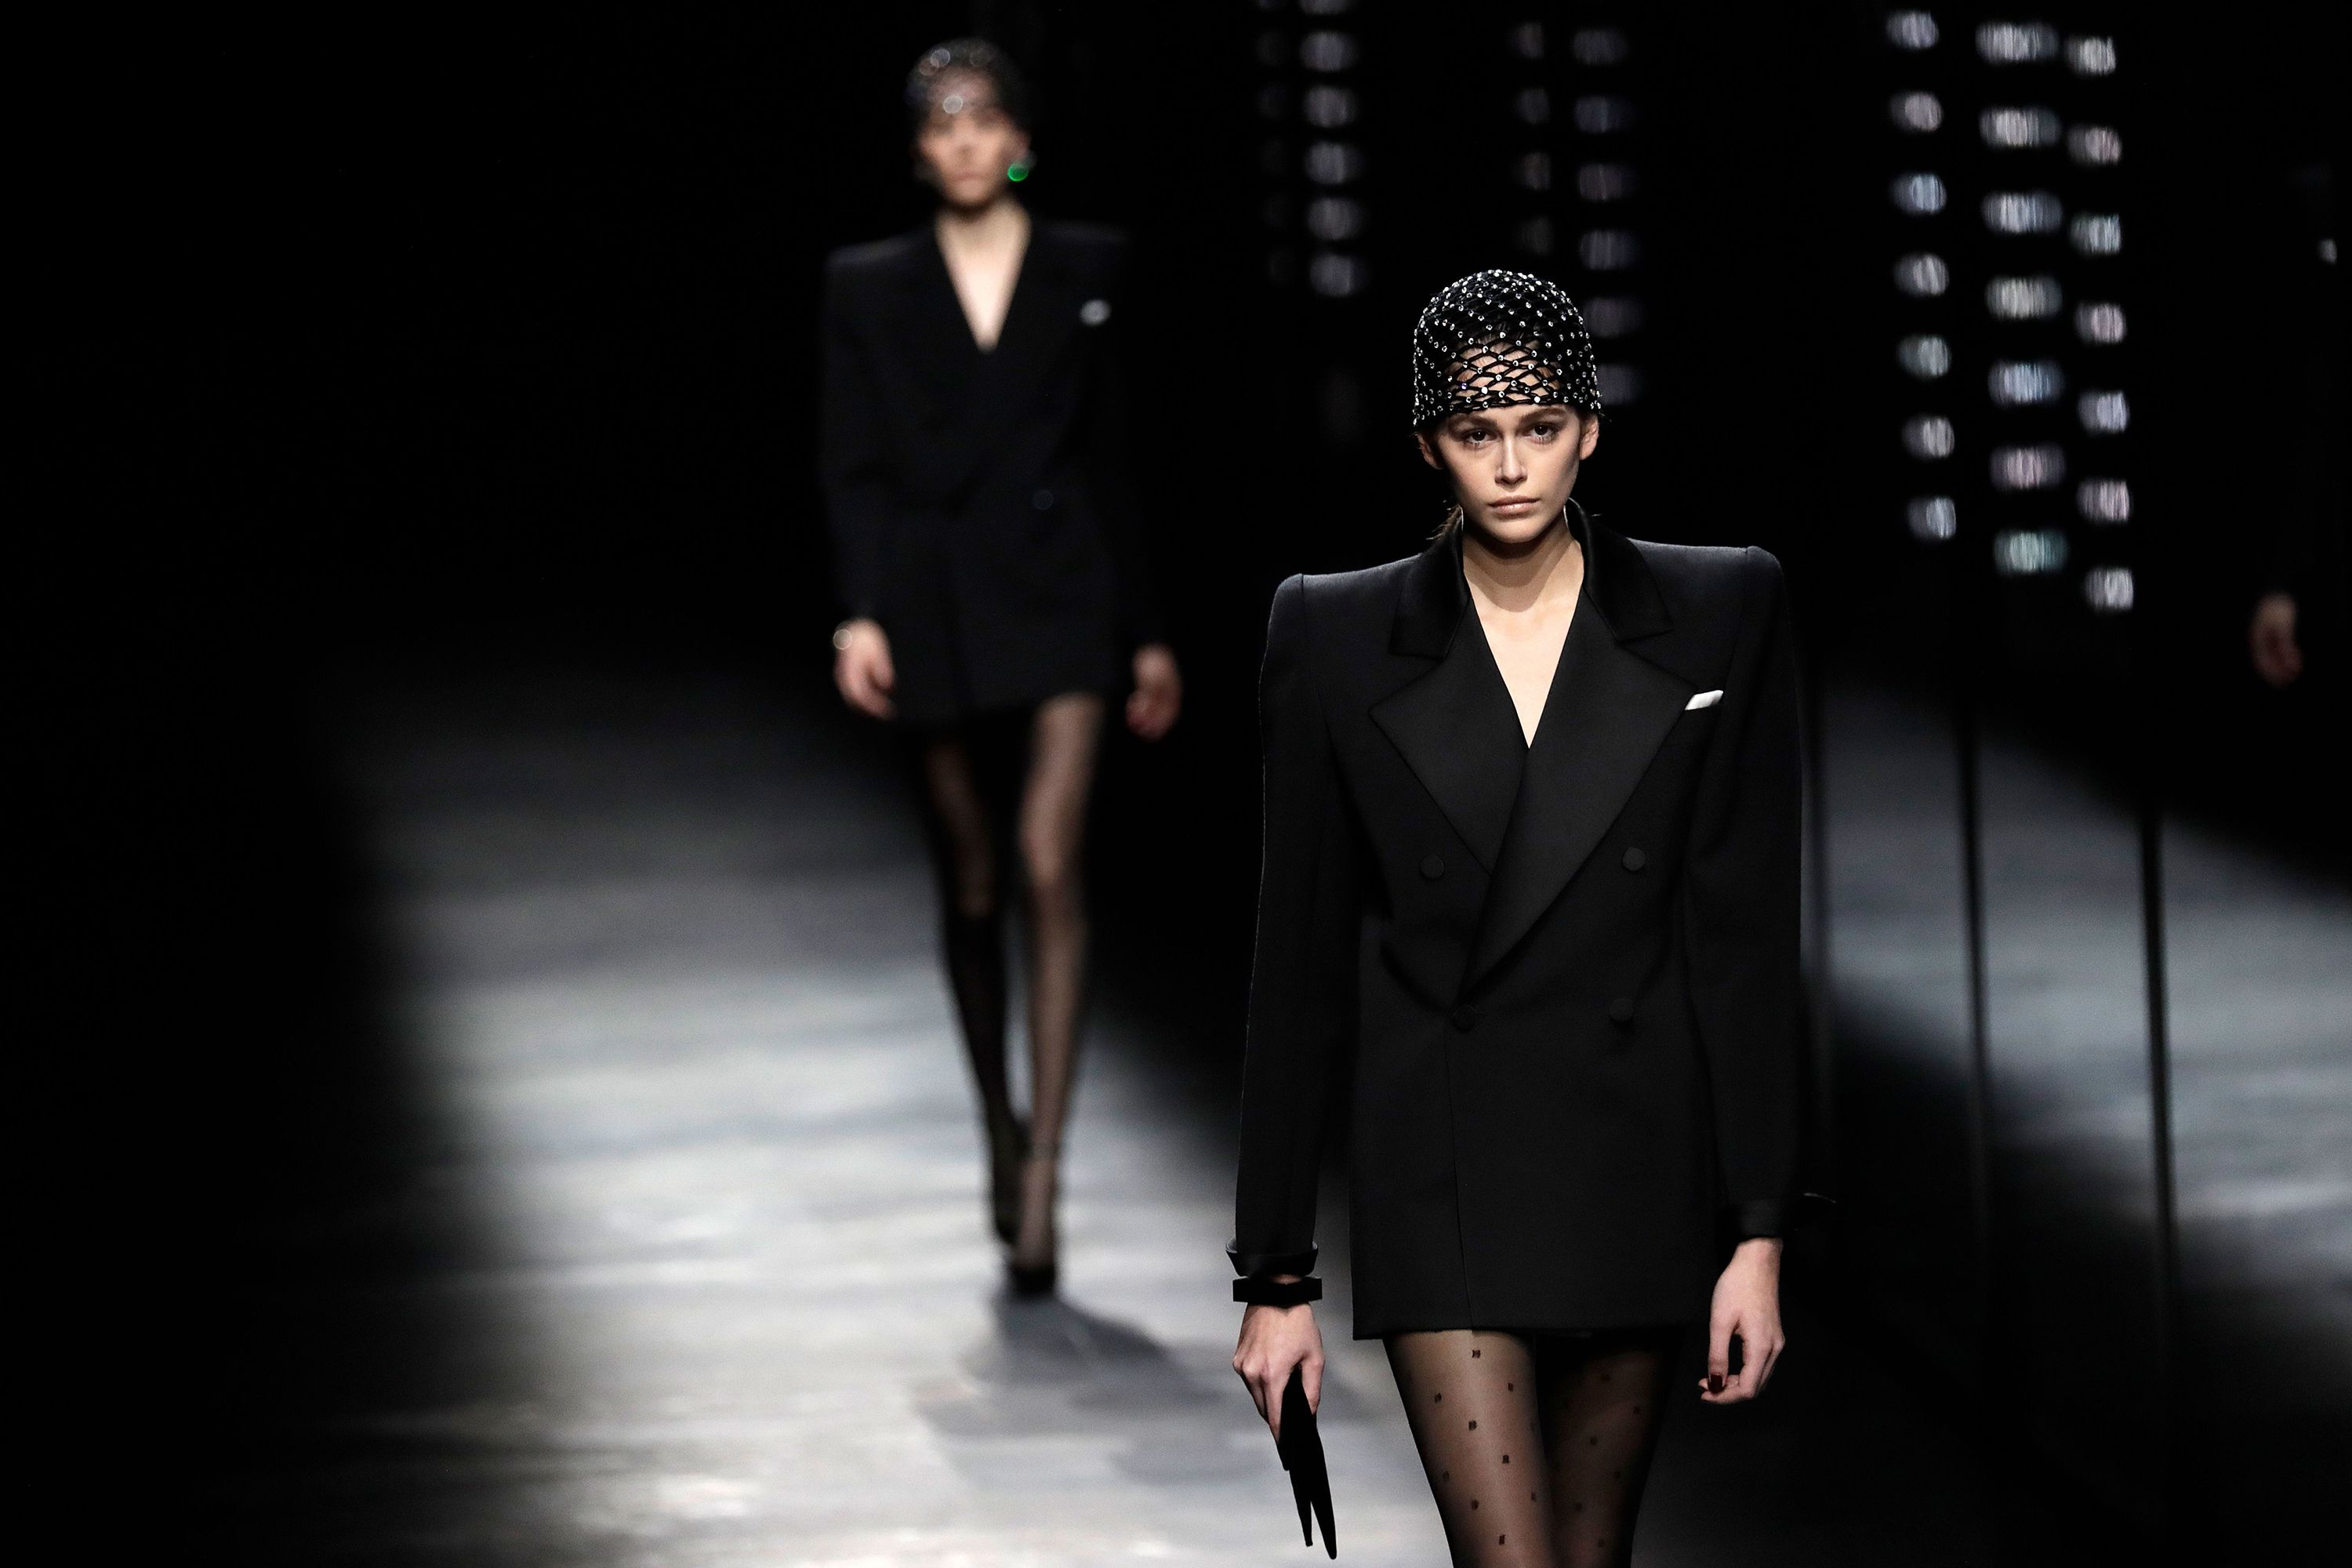 Fashion conglomerate Kering pledges to stop hiring models under 18